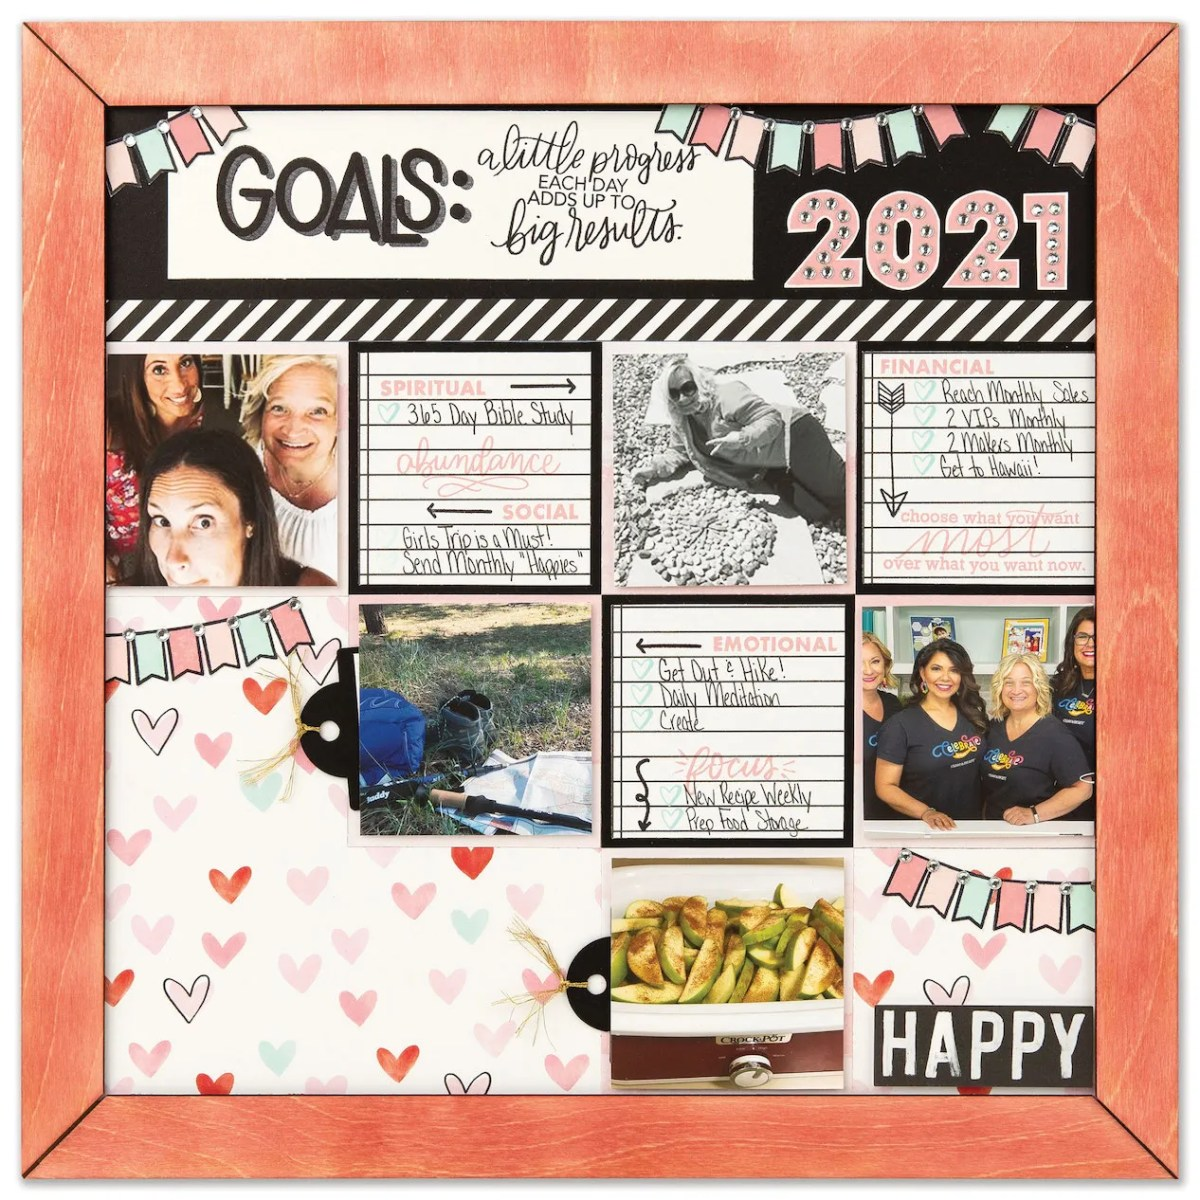 Vision Boards for Intentional Living #ctmh #closetomyheart #ctmhhomesweethome #visionboards #goals #inspiration #newyeargoals #spiritualgoals #financialgoals #emotionalgoals #focus #makeithappen